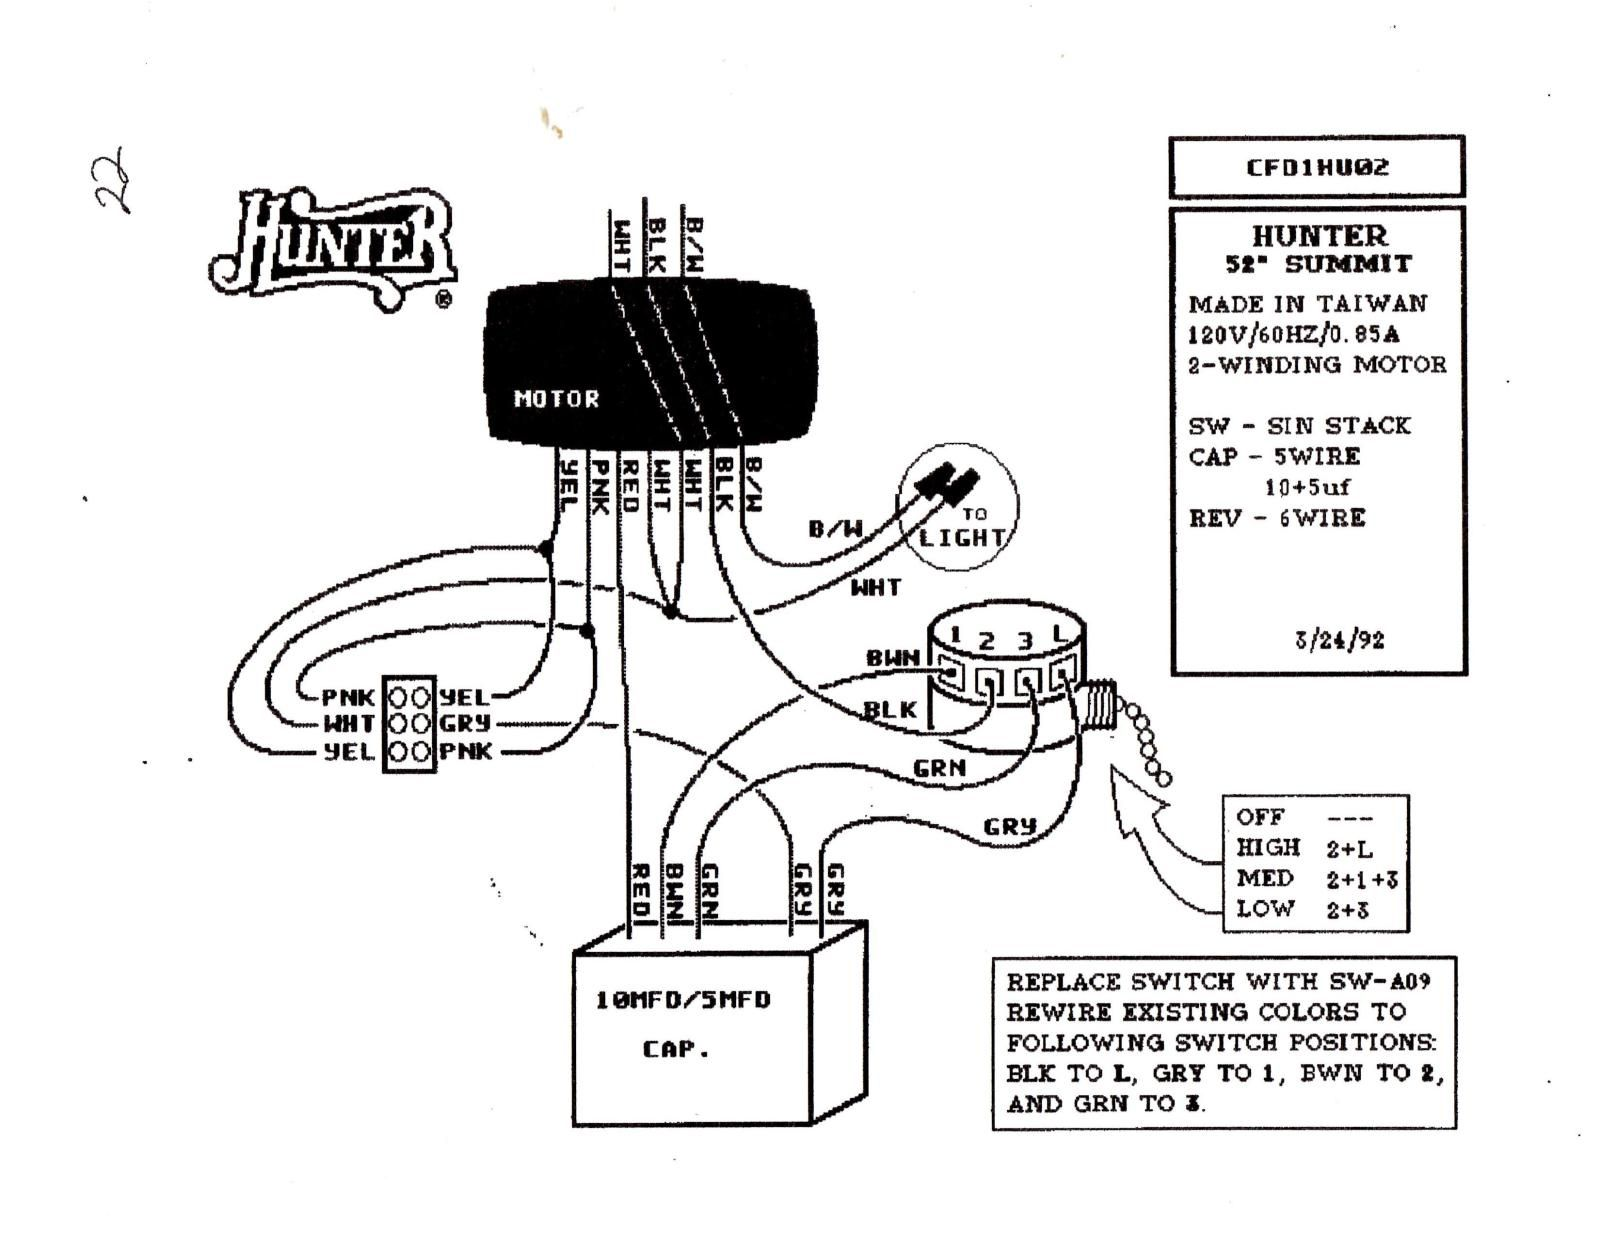 Hunter Ceiling Fan Speed Switch Wiring Diagram In